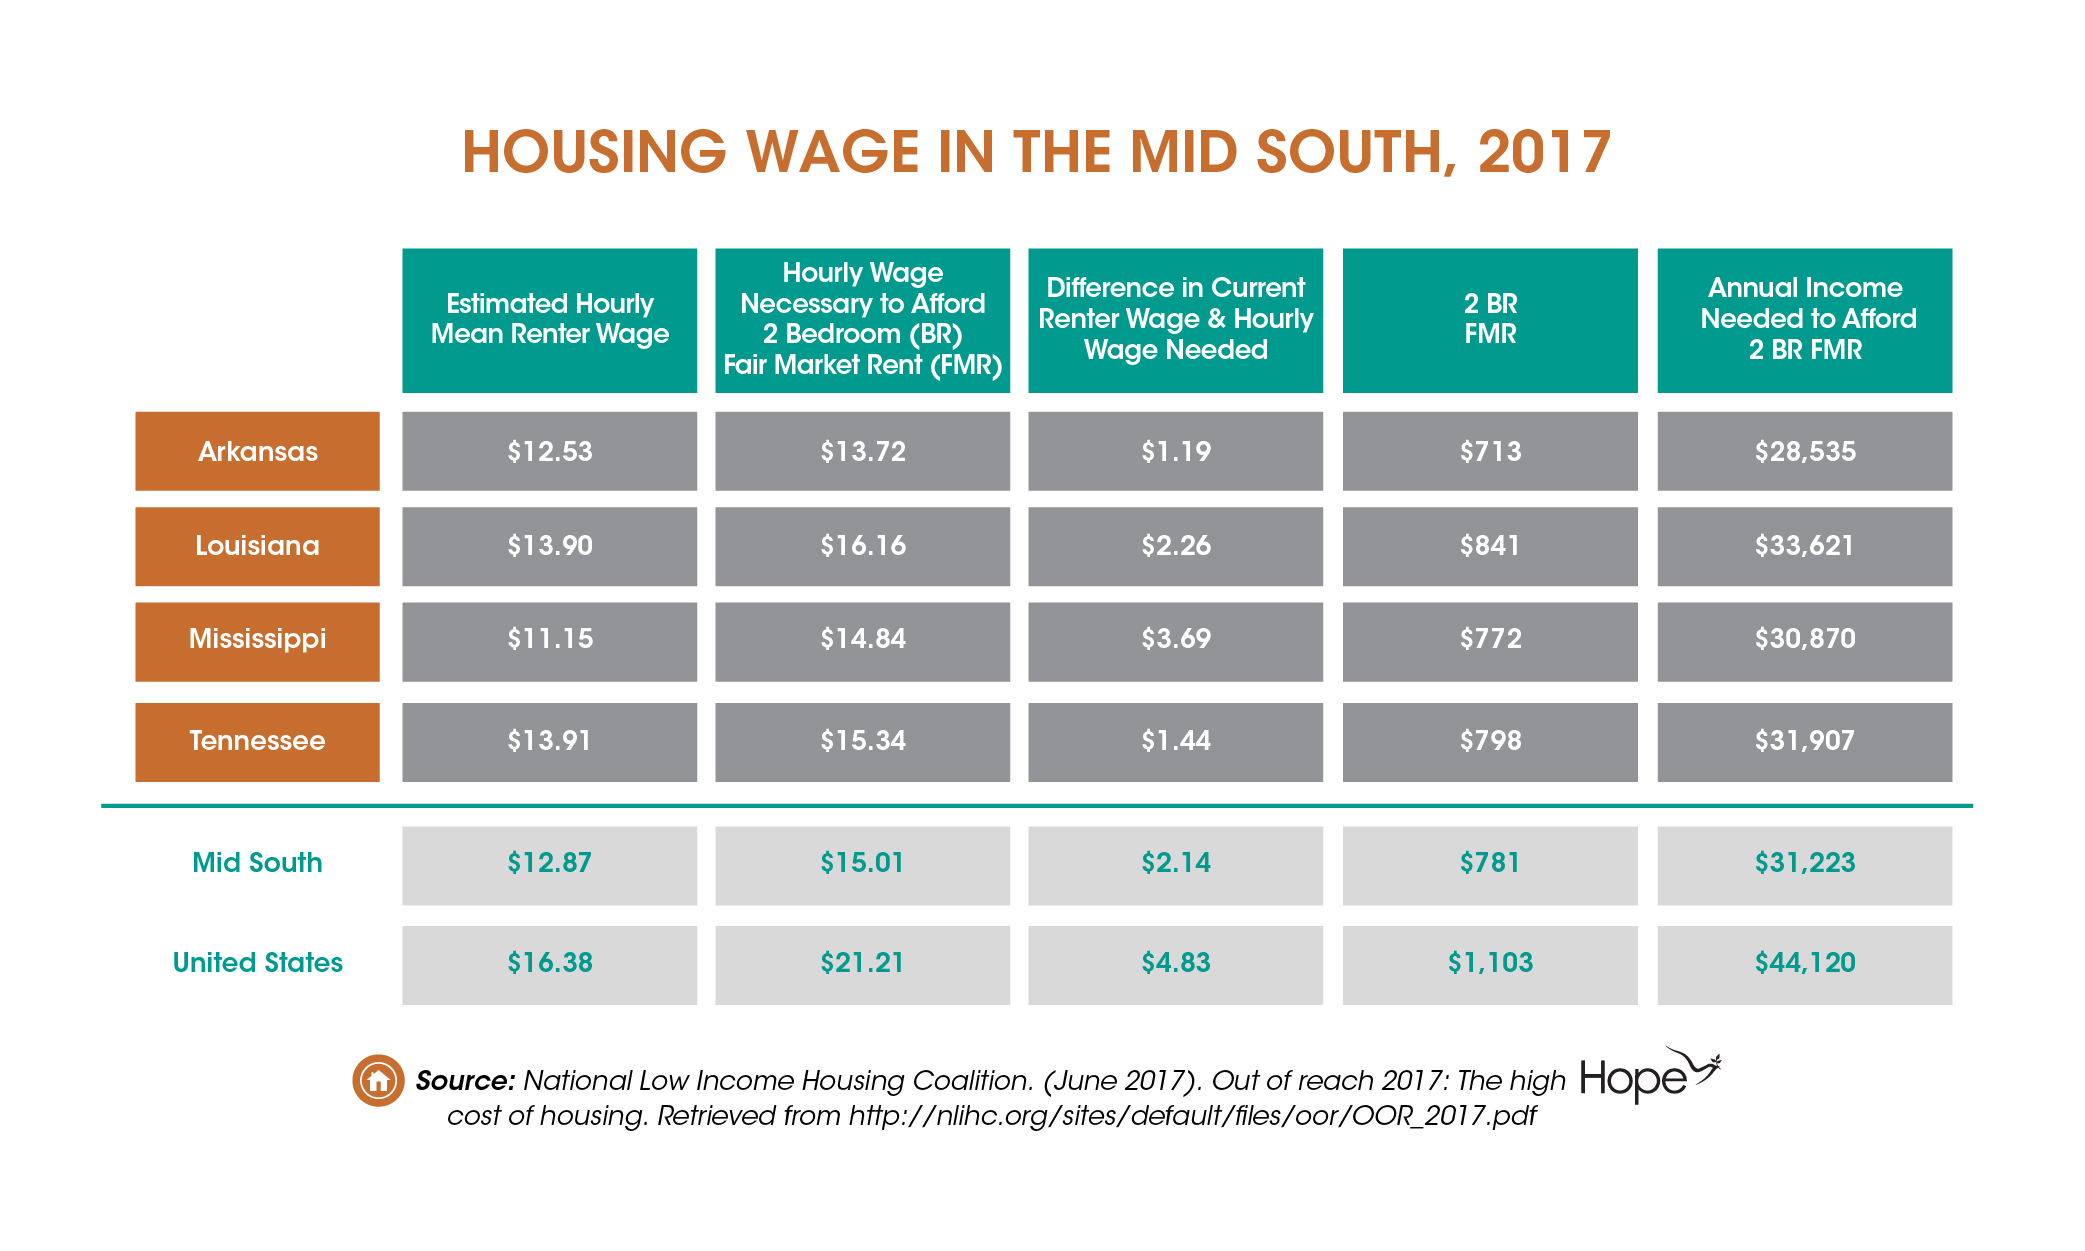 Affordable Housing is Out of Reach for Low-Wage Workers in the Mid South-04 (4)